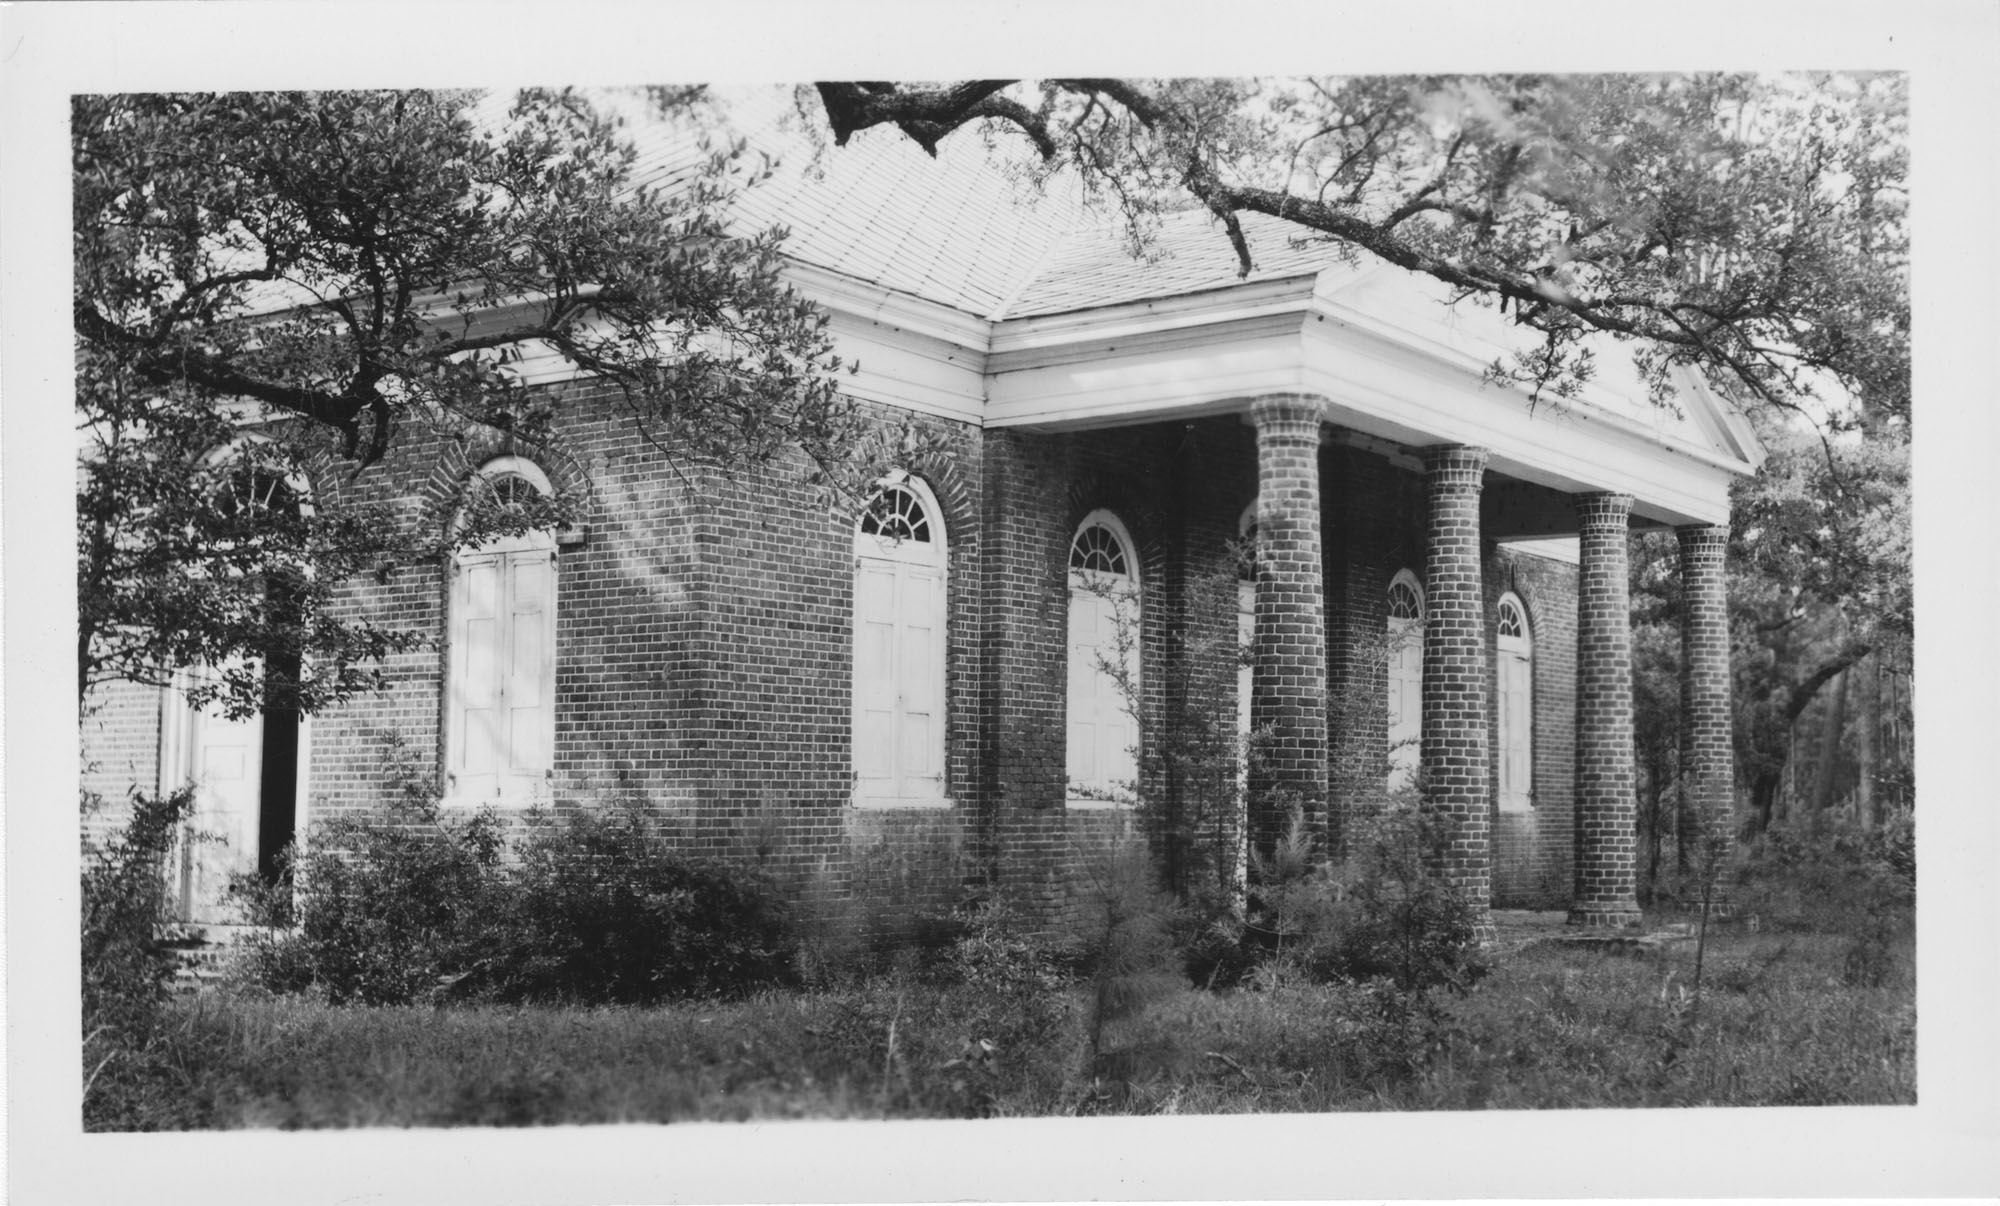 Side Angle of Greek Revival Bungalow